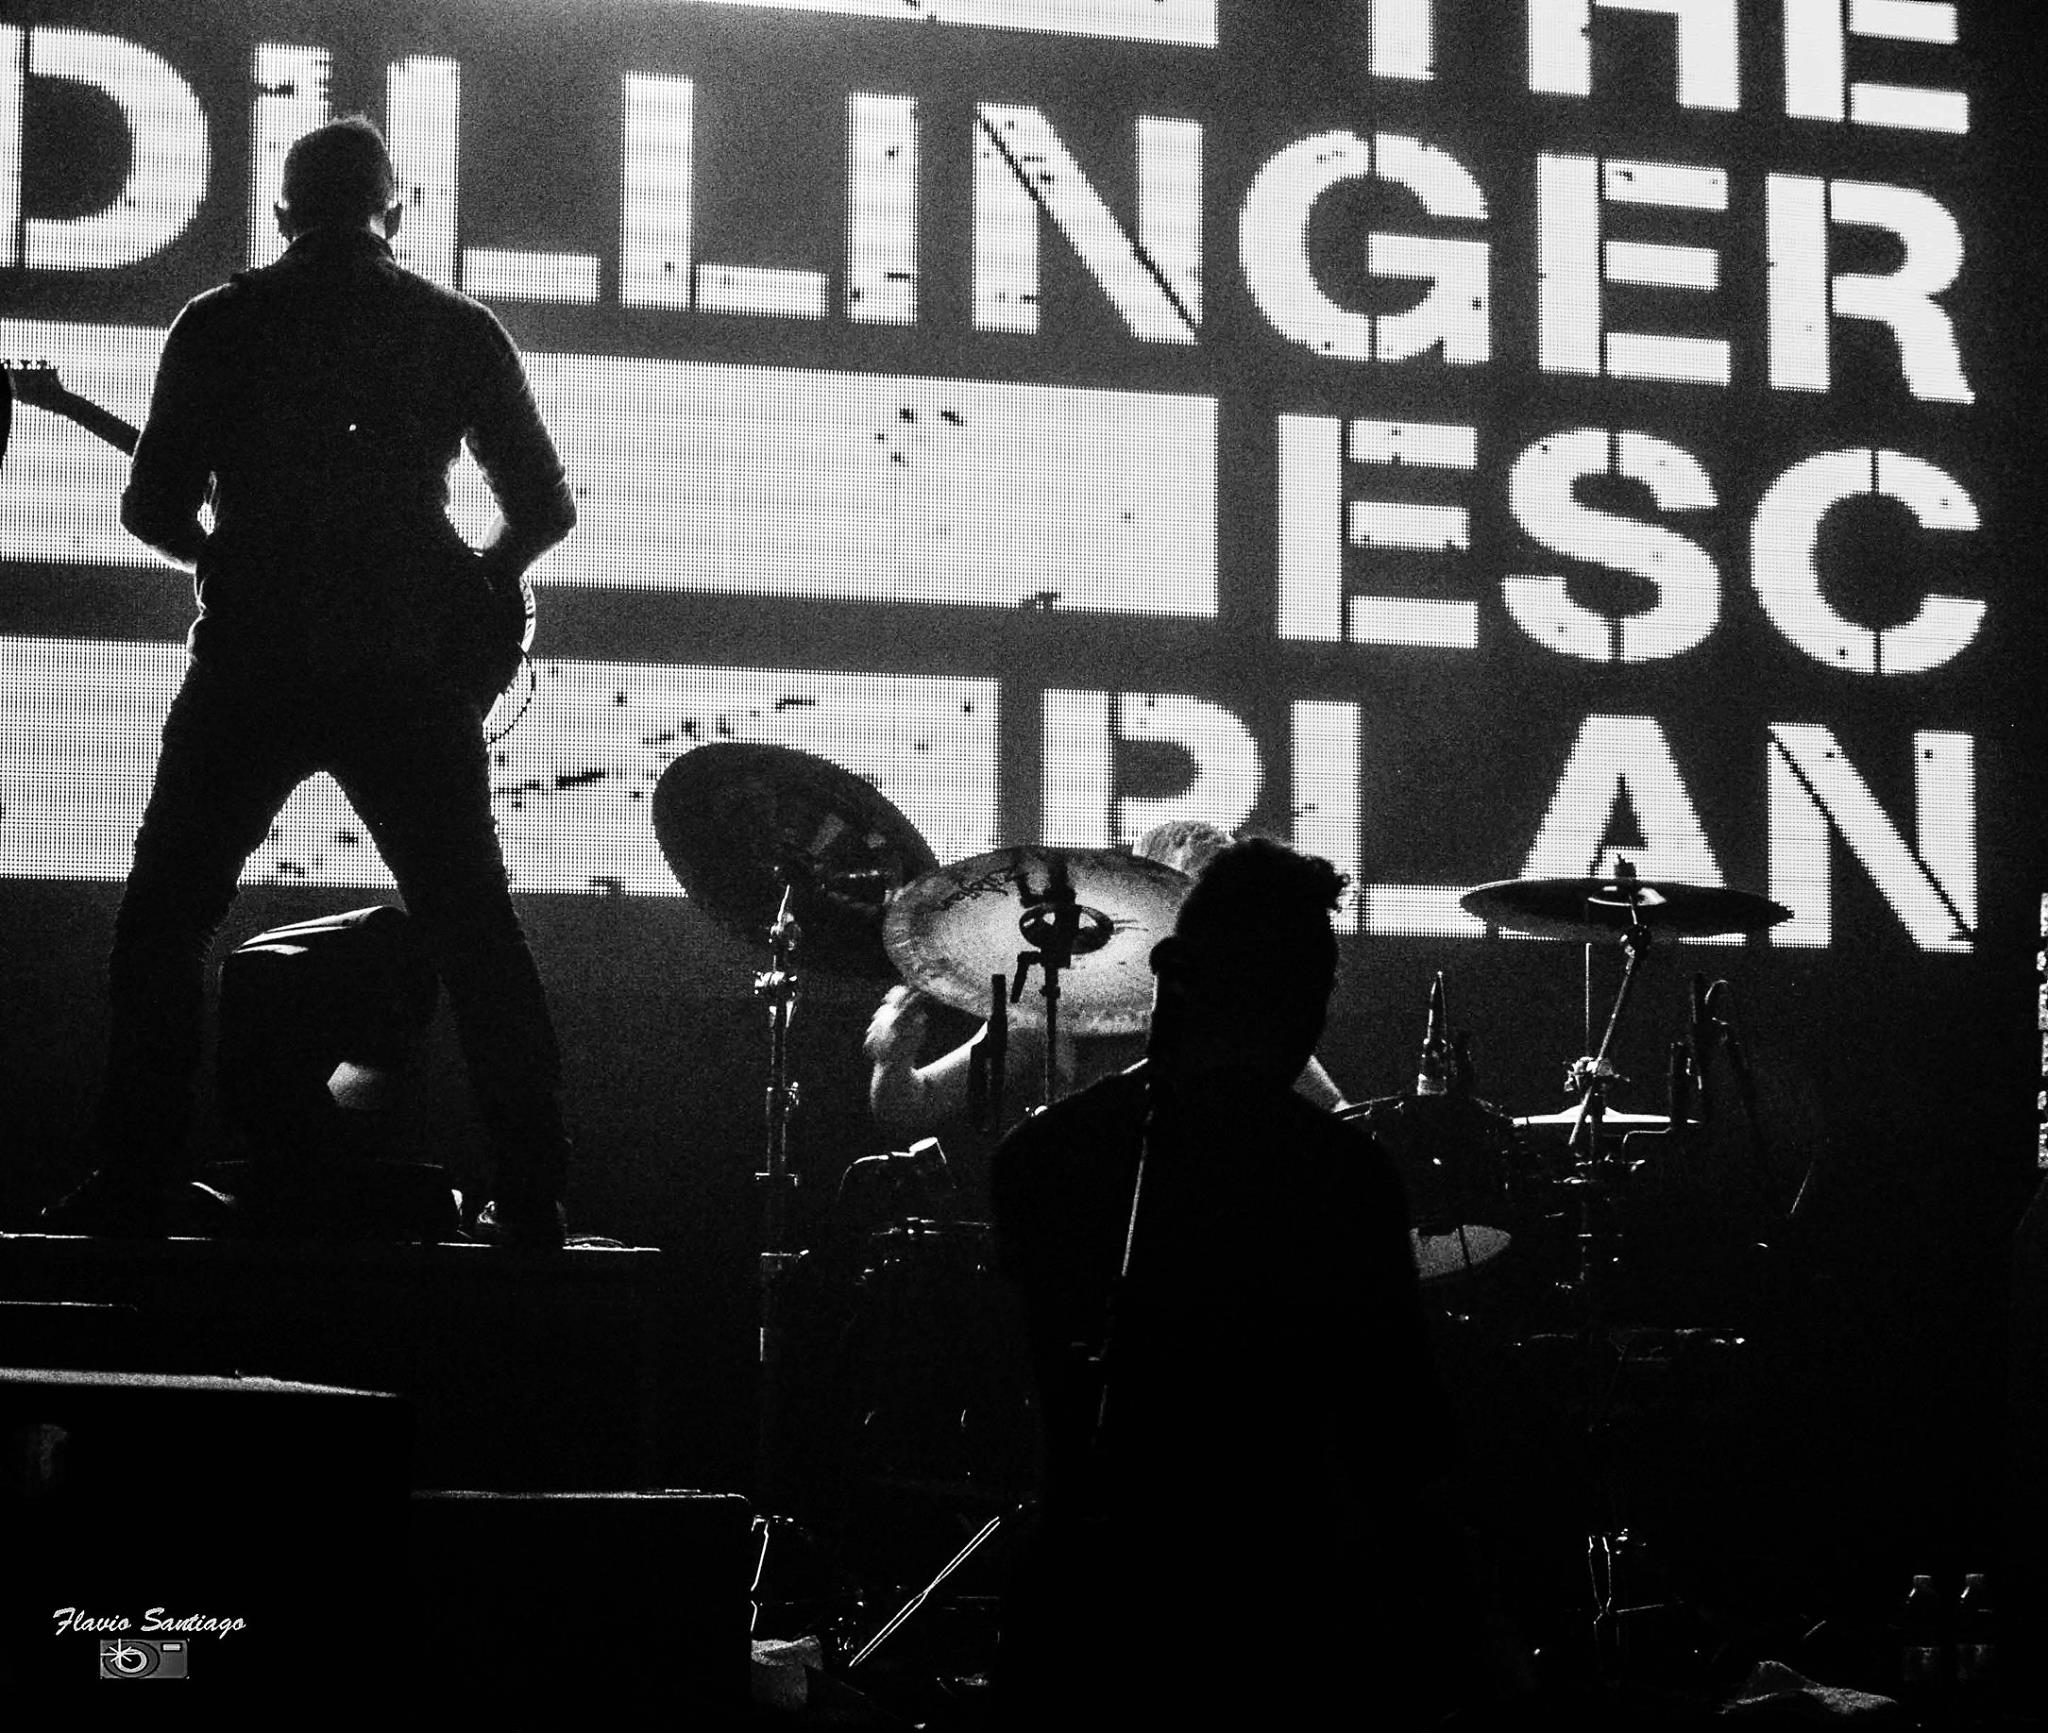 the dillinger escape plan sao paulo clash show Flavio Santiago OnStage